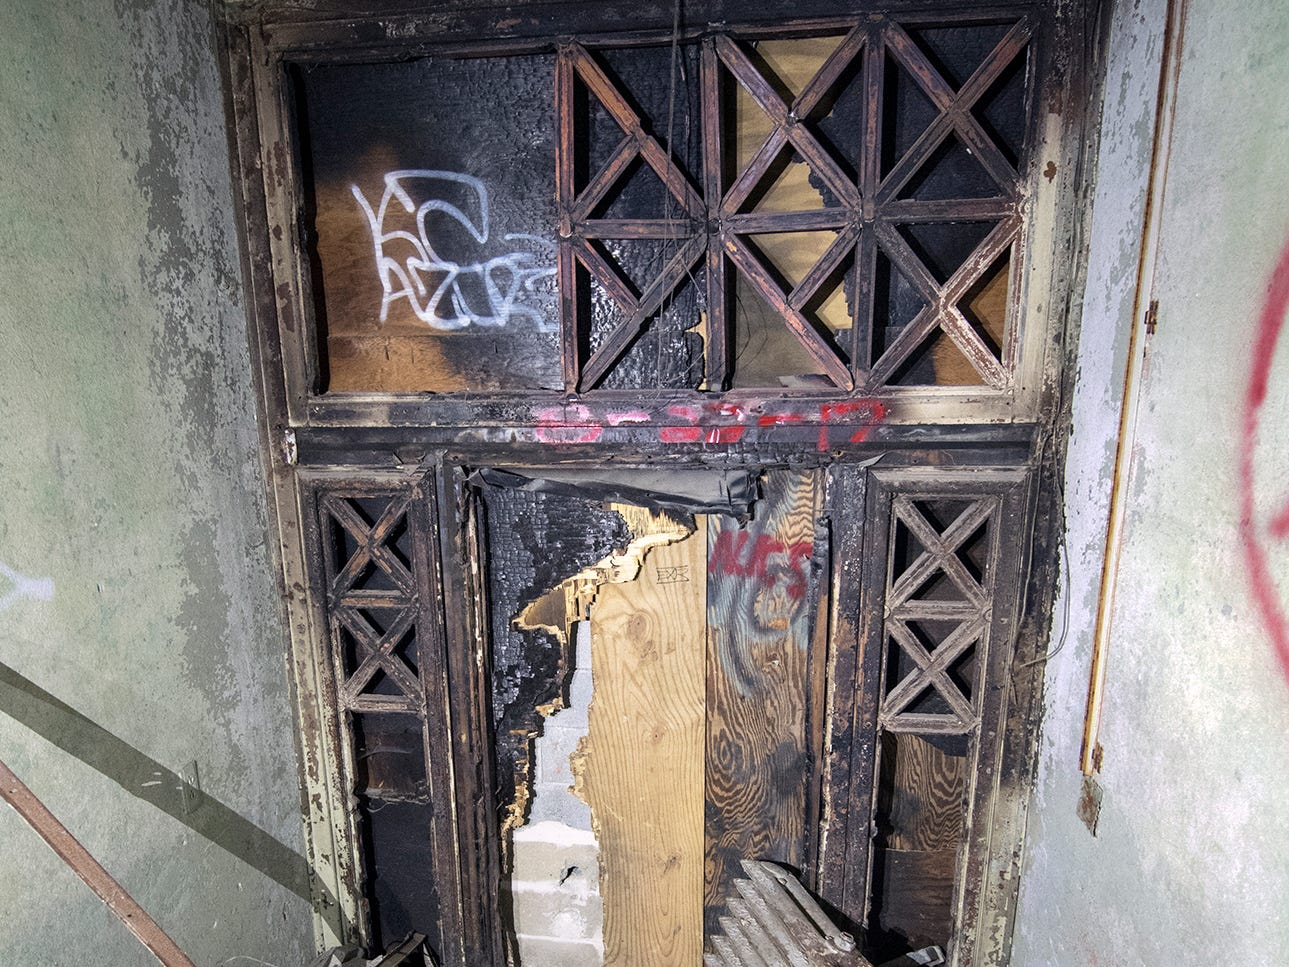 A battered side entrance inside the old York County Prison is littered with a radiator and other debris.